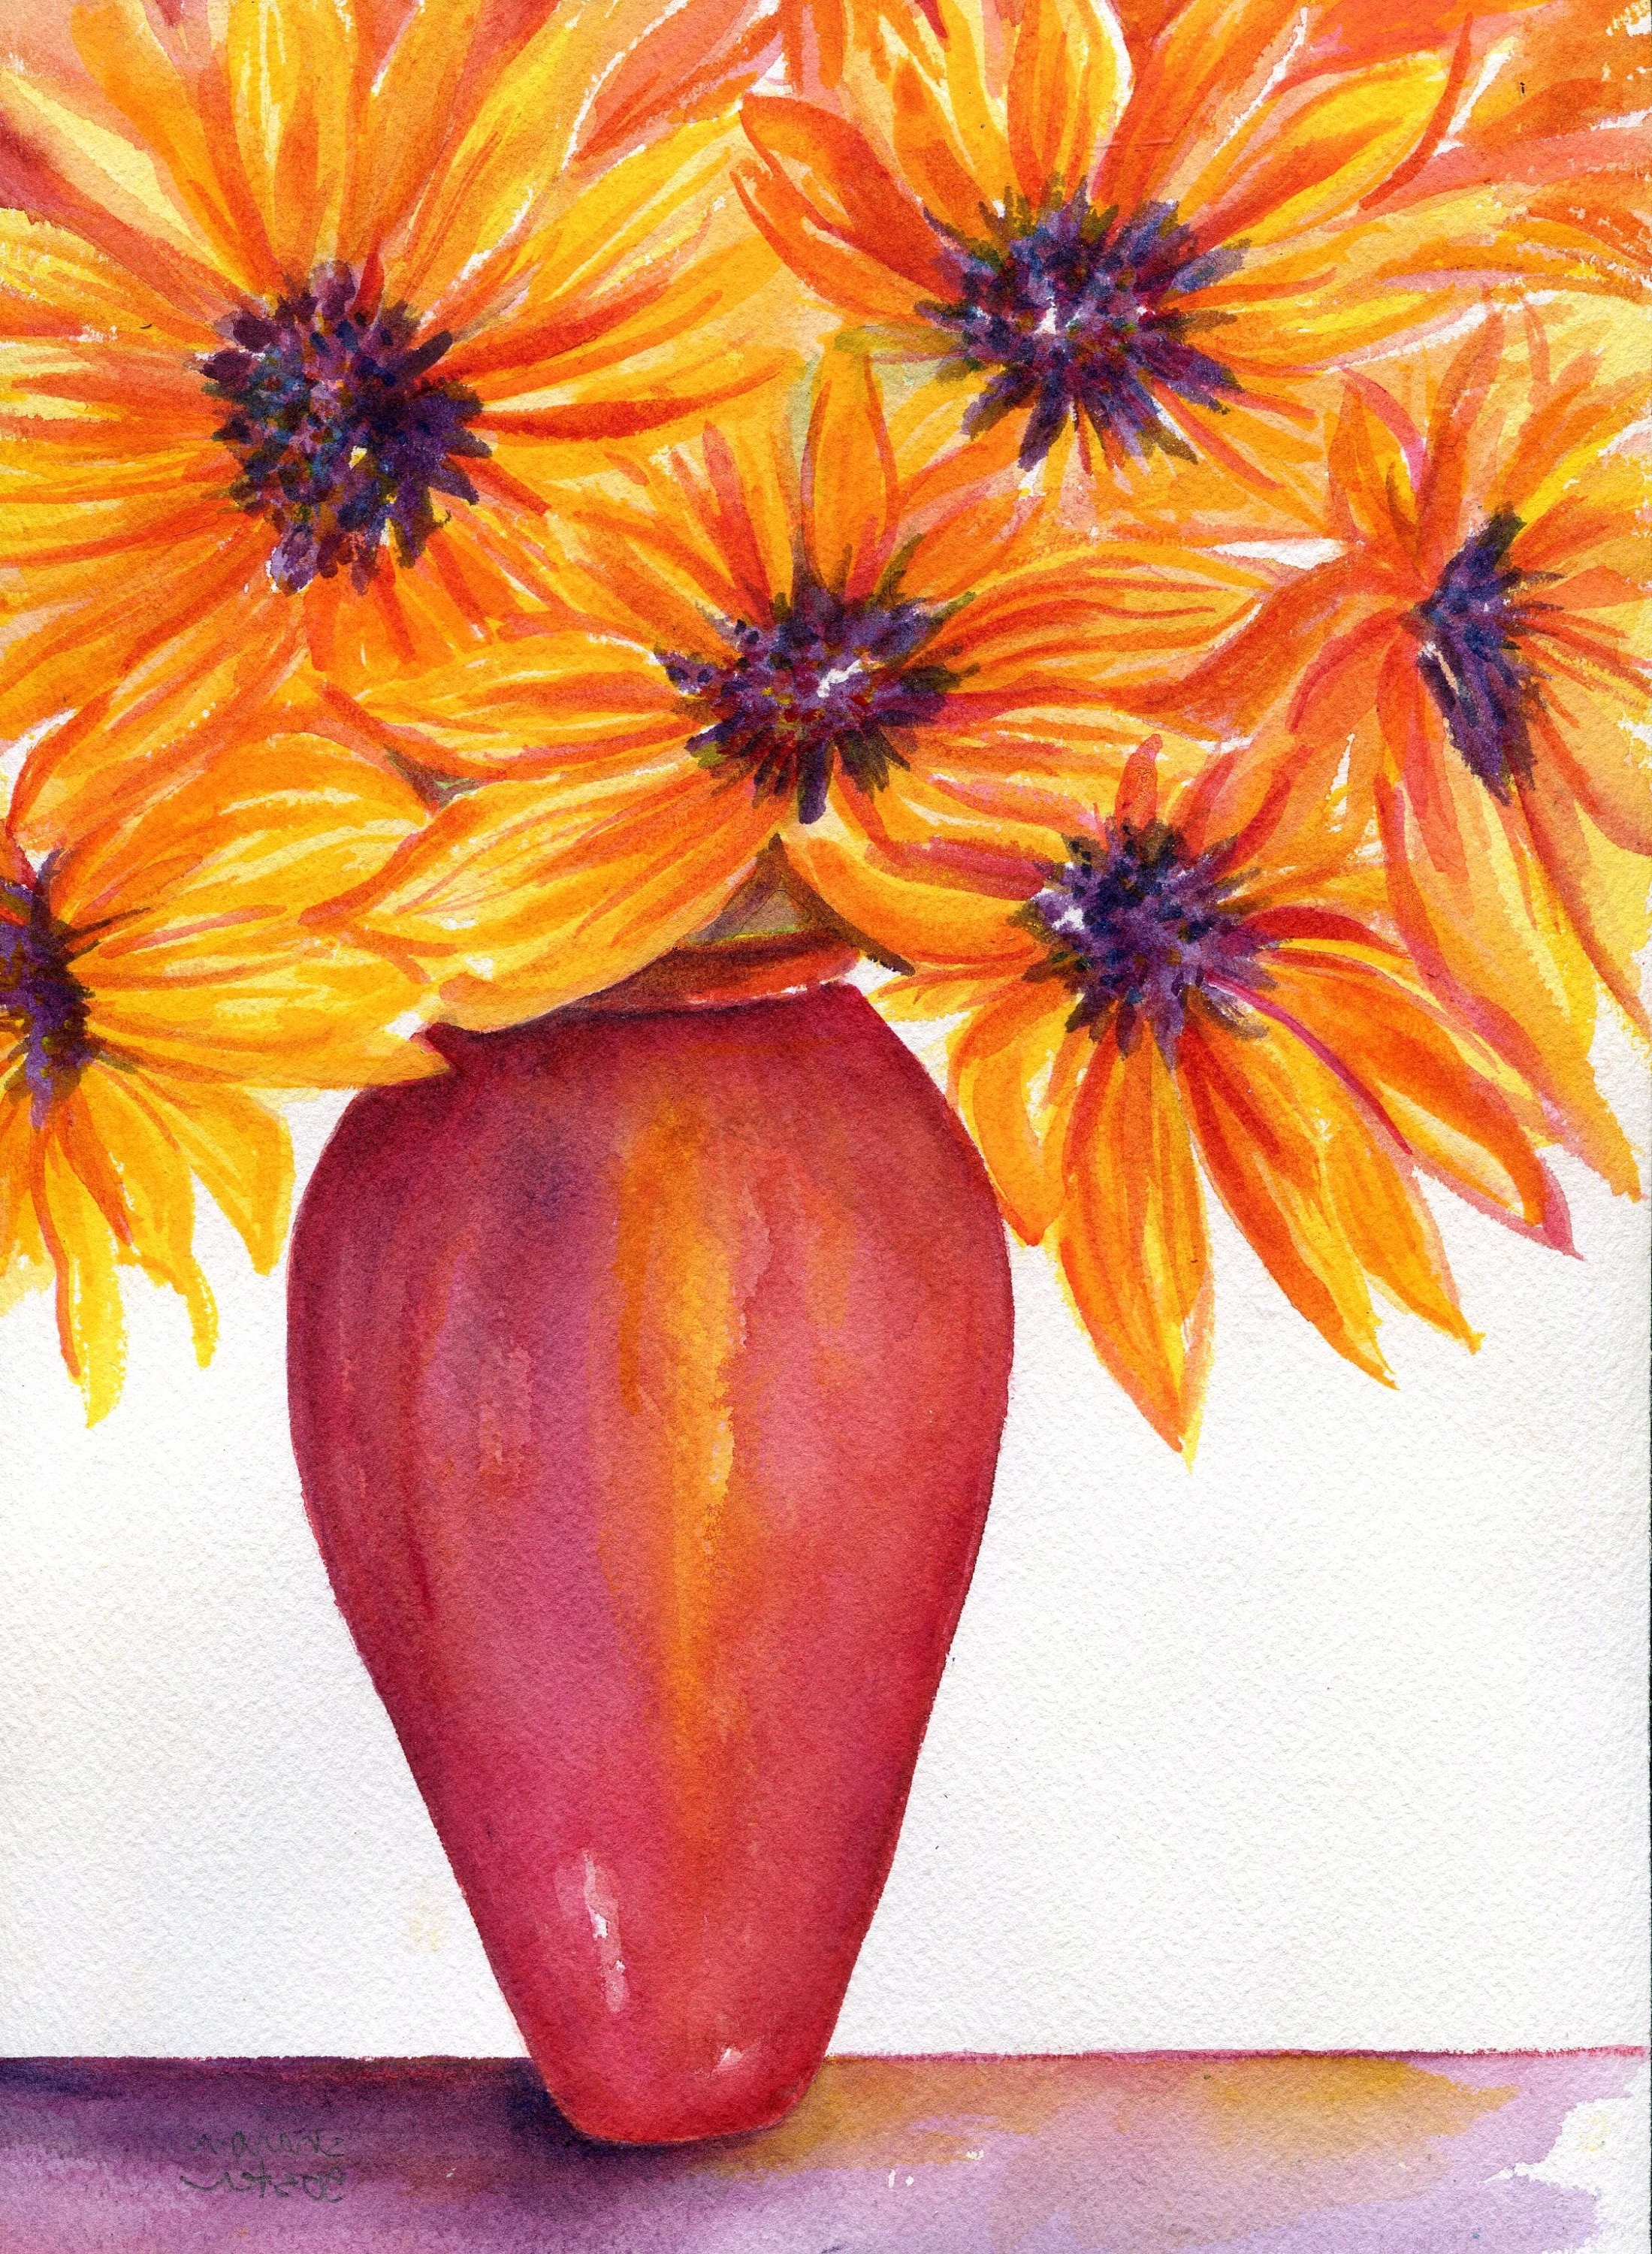 Latest Sunflower Wall Art In Sunflowers Watercolors Painting Original, Sunflower Wall Art (View 4 of 20)